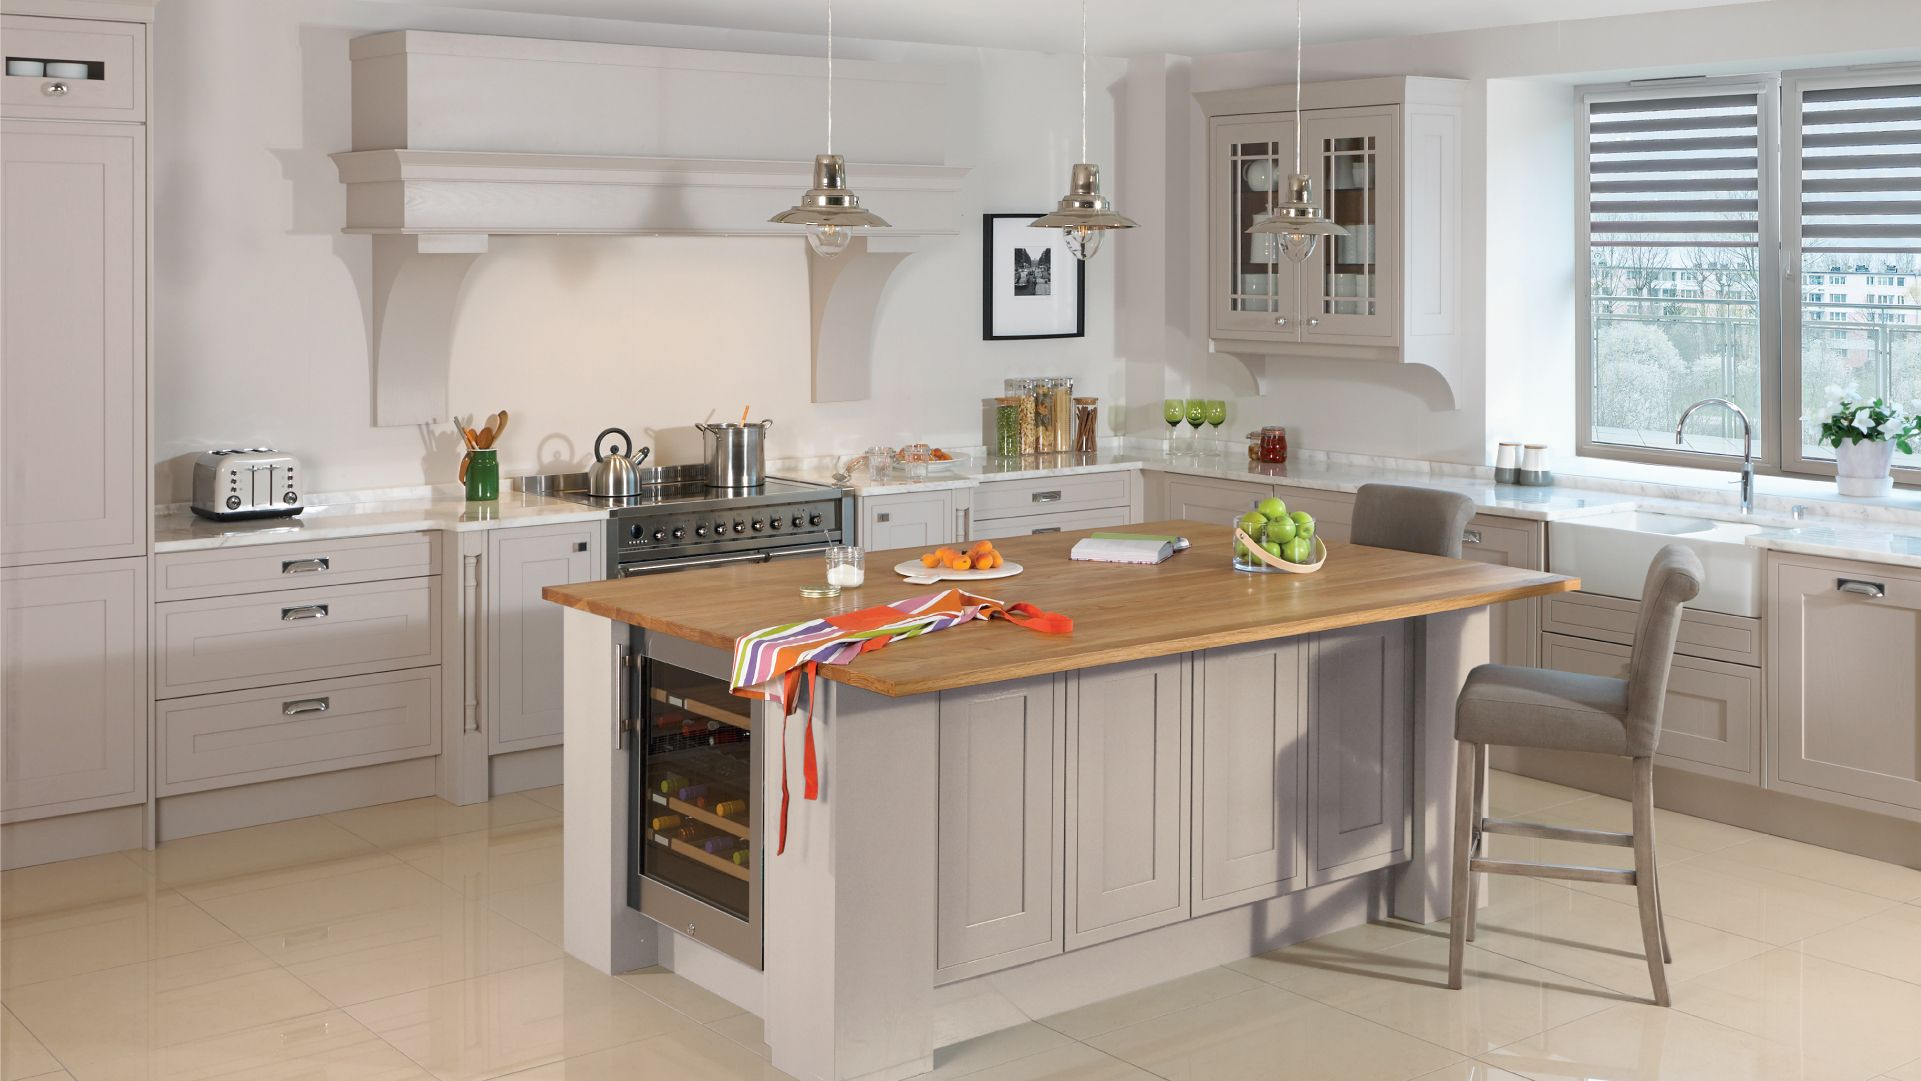 Pin by Woodie's on Woodie's Kitchens Kitchen design